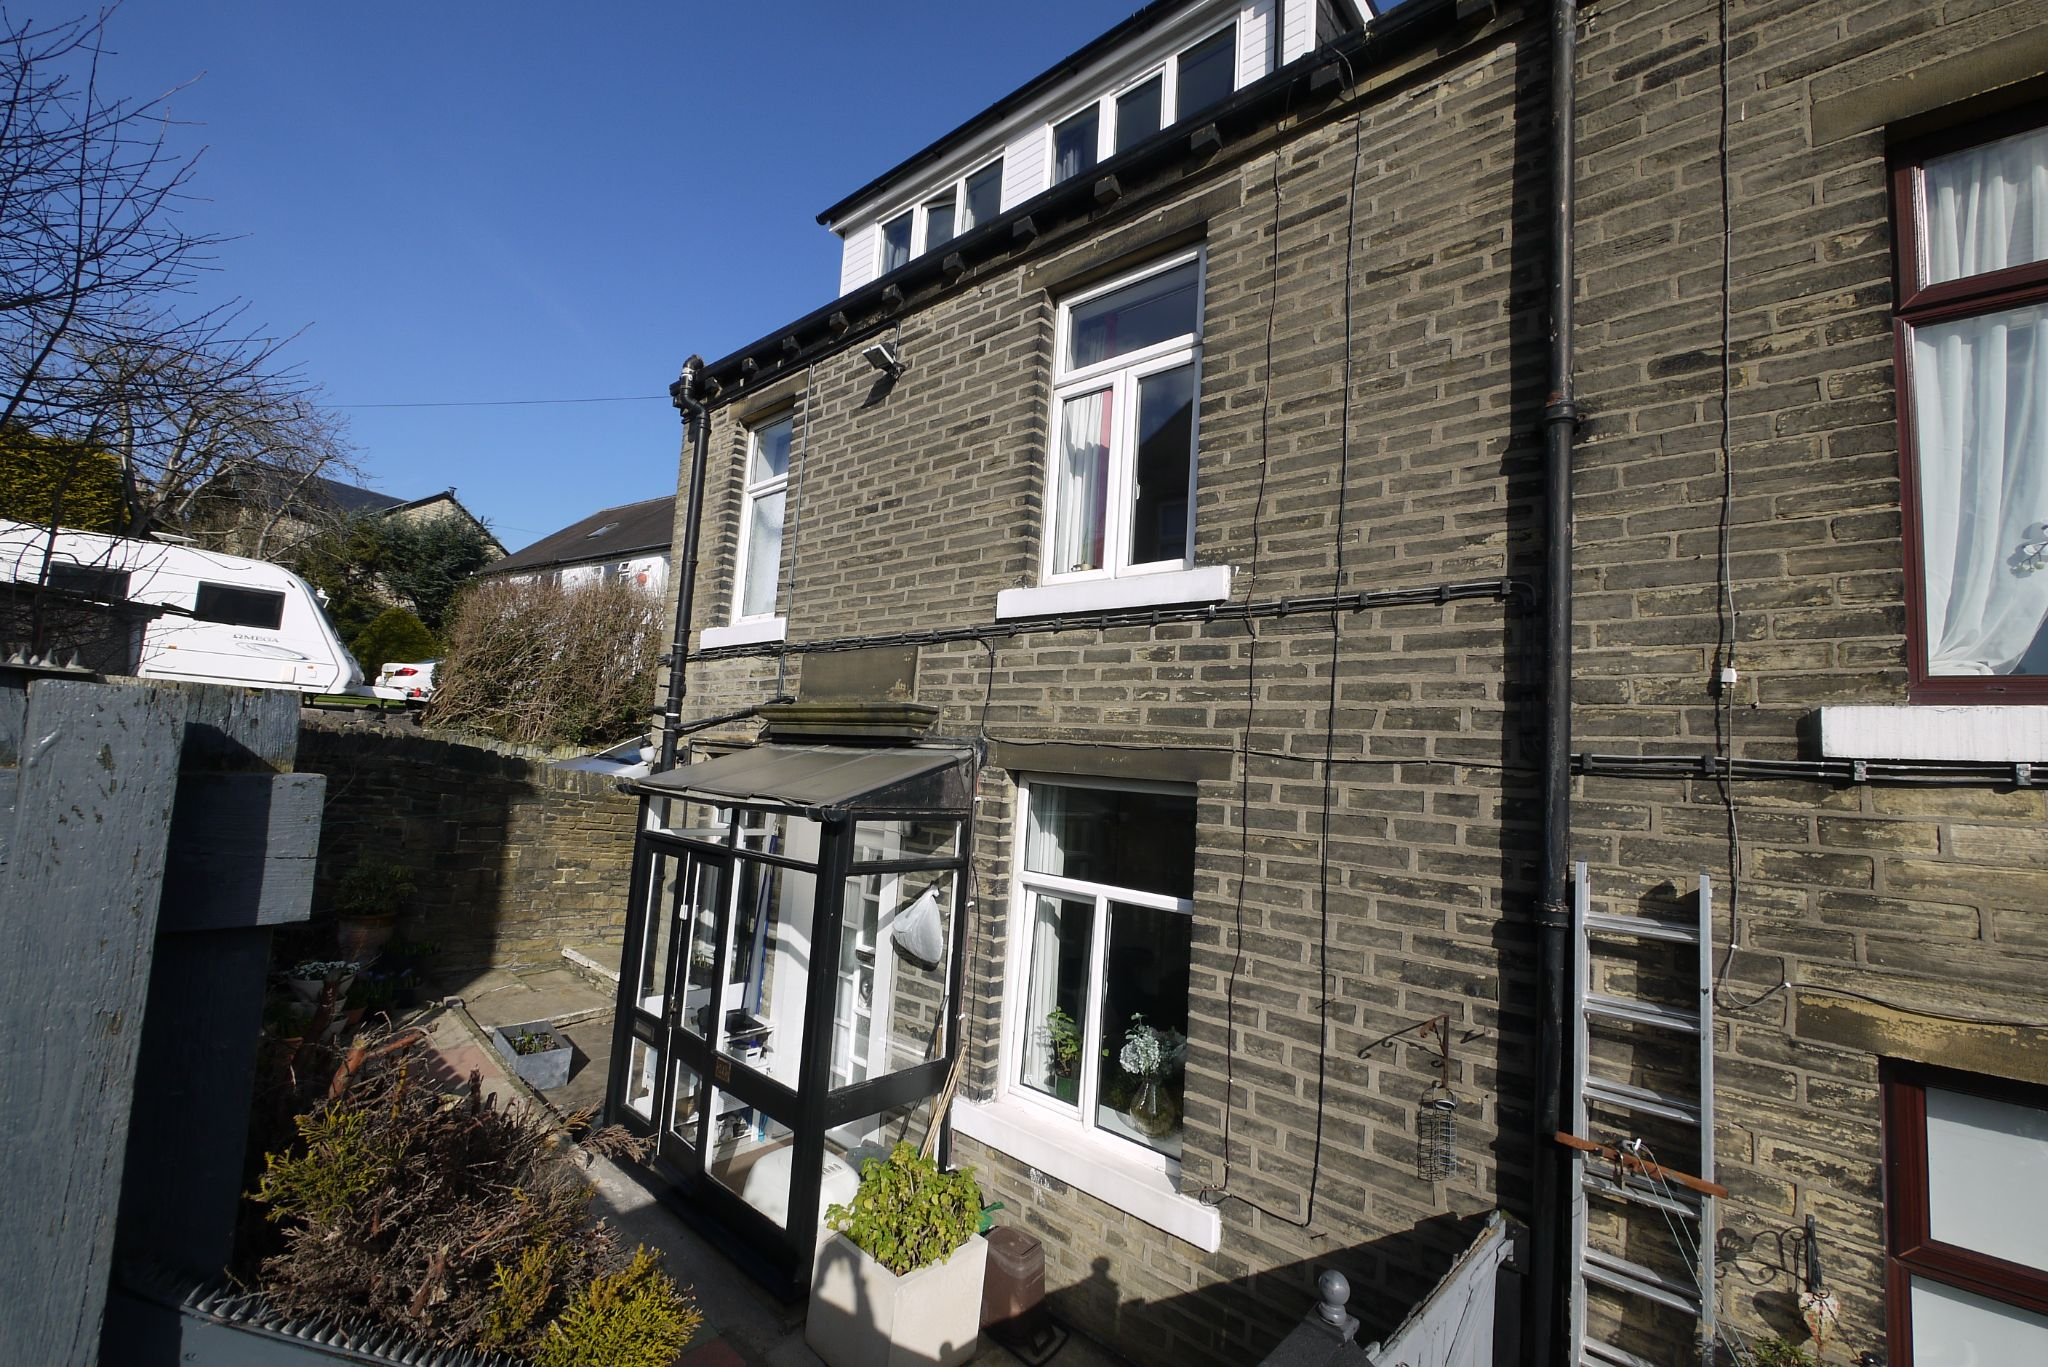 2 bedroom mid terraced house For Sale in Halifax - Photograph 1.